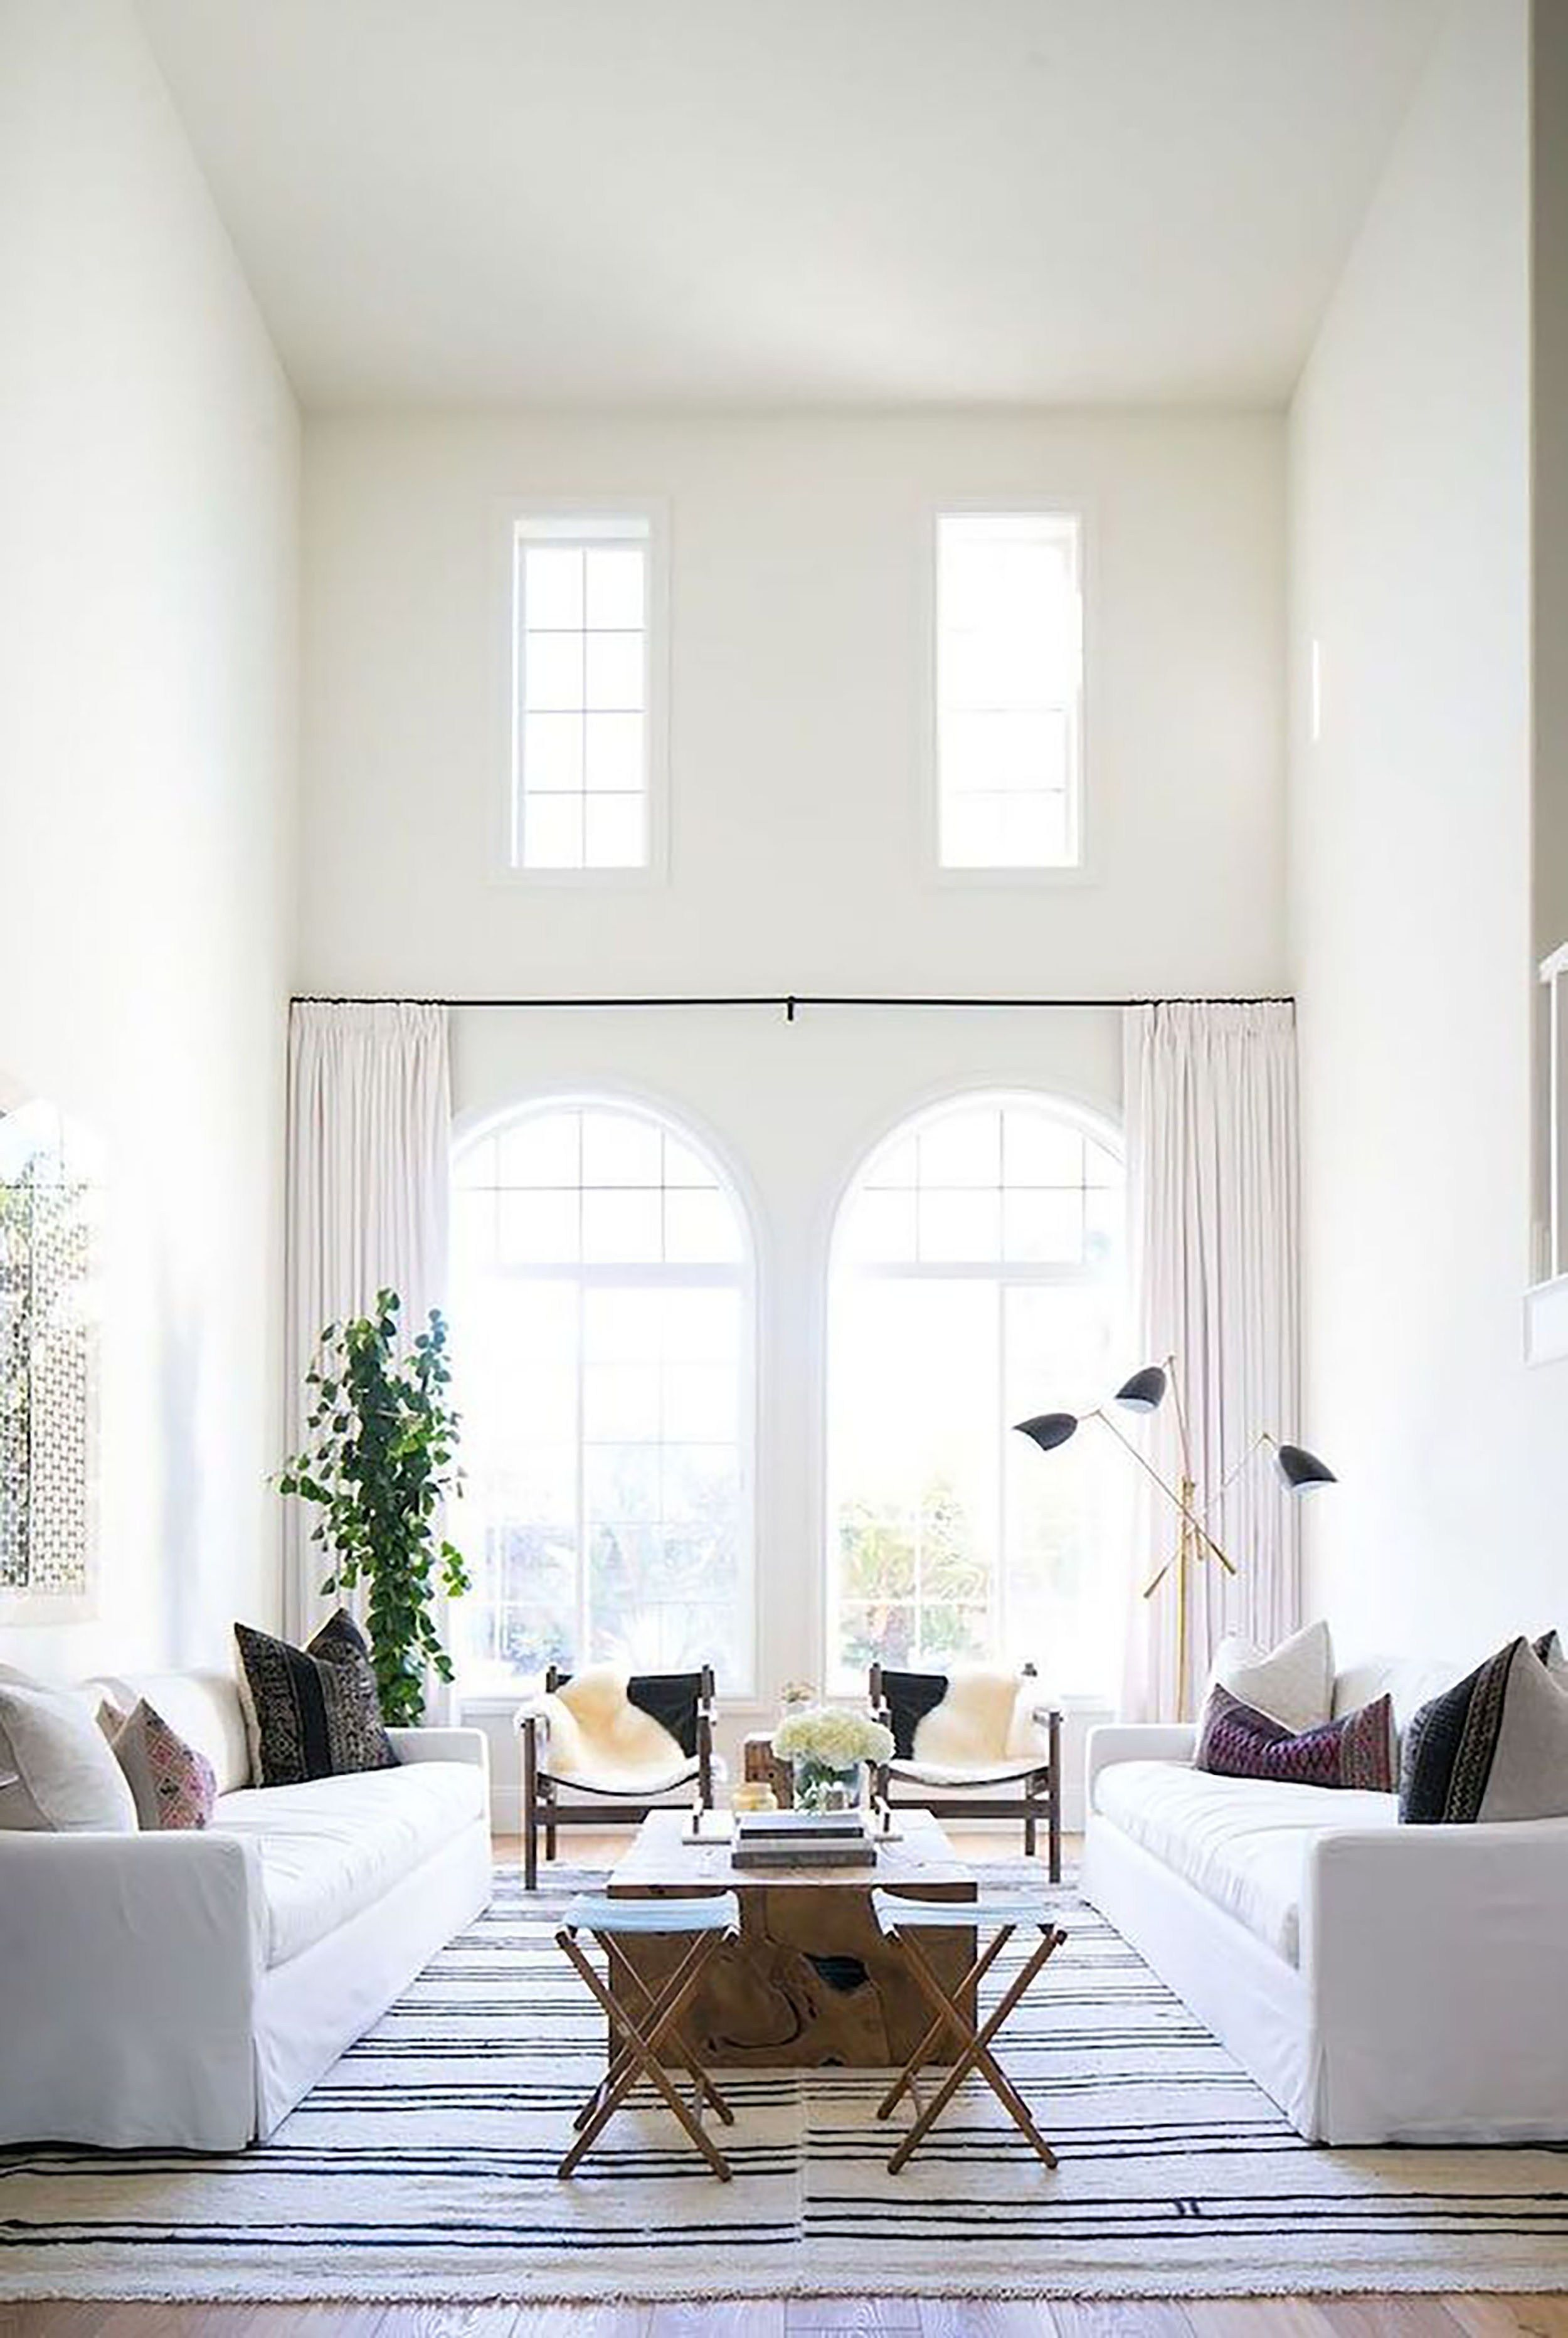 How To Dress Awkward Windows + Where To Shop For Readymade Options ...